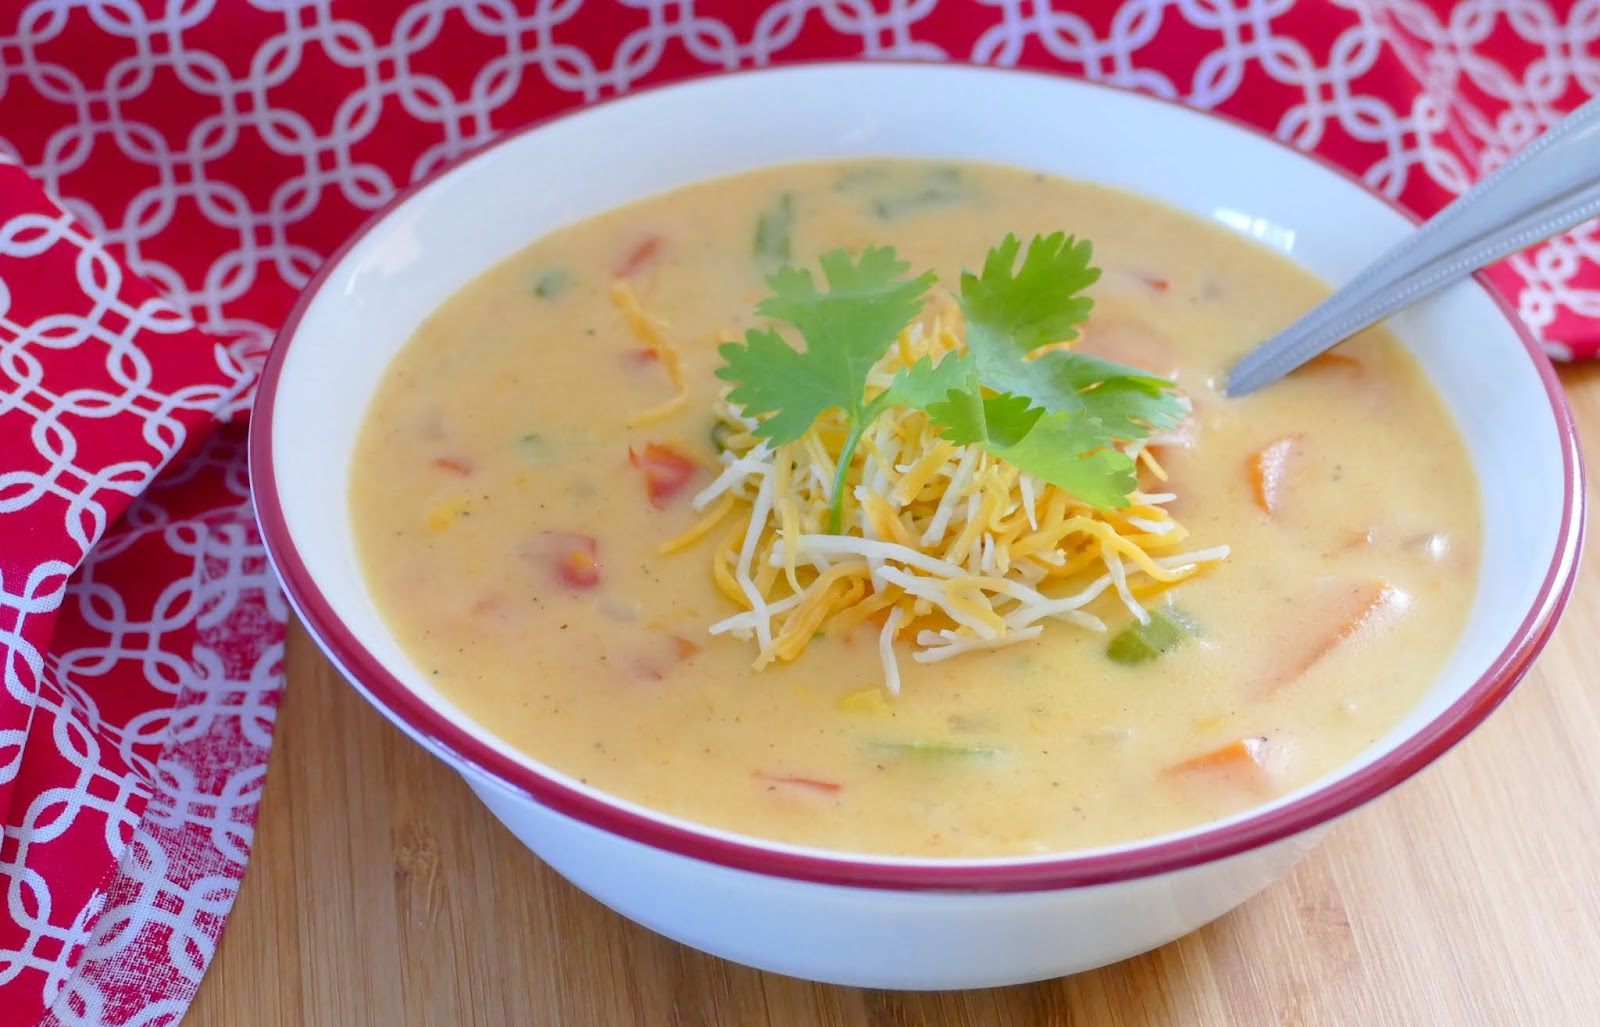 This easy, meatless soup is ready in 30 minutes! The Mexican flavors make this cheesy chowder absolutely delicious! The combo of carrots, celery, onion, bell pepper and corn make this soup so hearty! Add shredded rotisserie chicken if you're a meat lover!